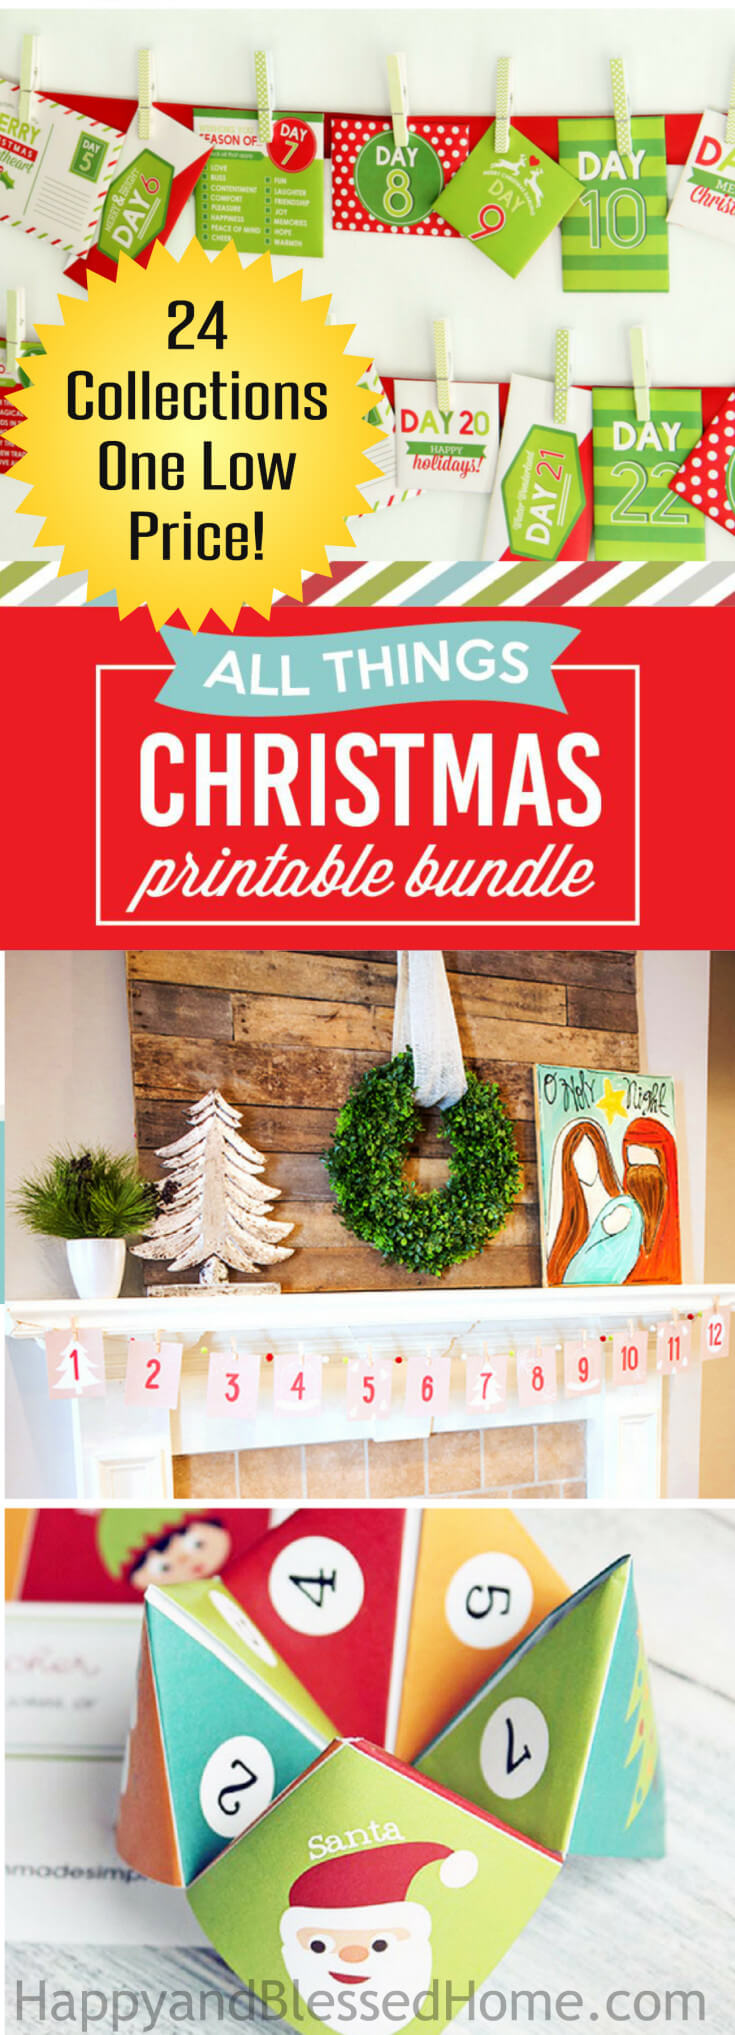 unbelieveable-deal-on-christmas-goodies-24-collections-at-one-low-price-spread-some-holiday-cheer-this-year